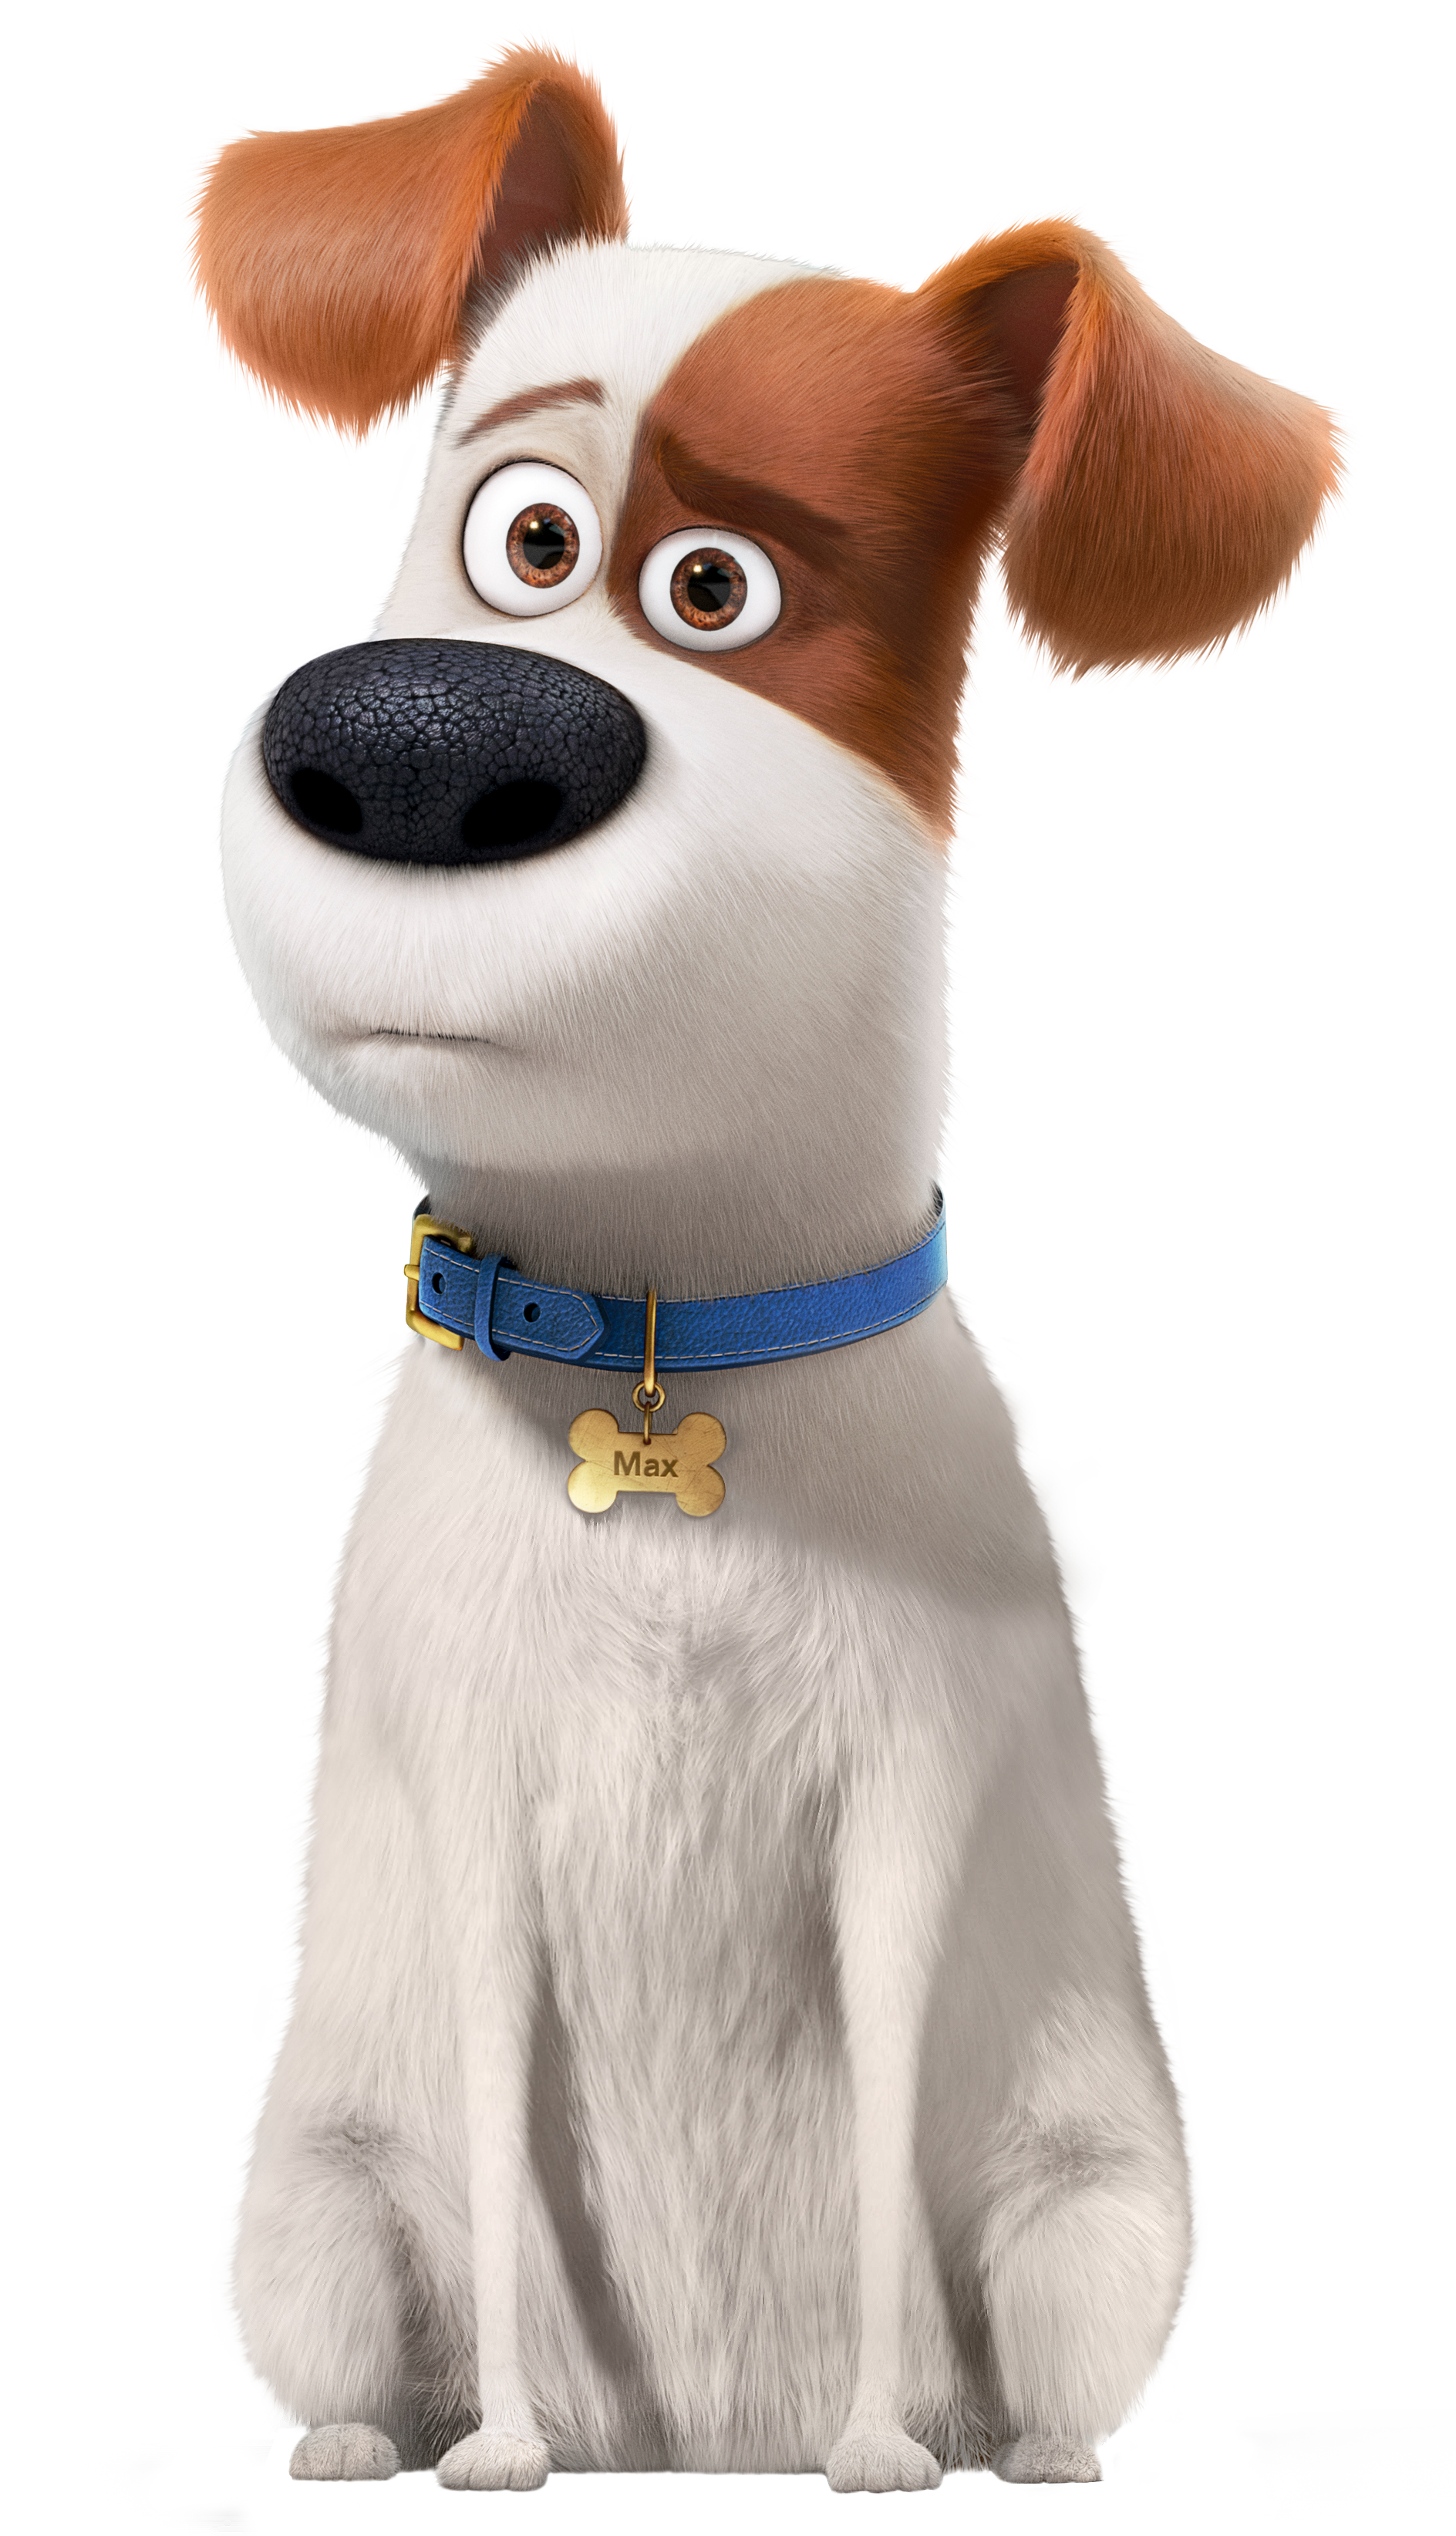 Secret Life Of Pets Clipart - The Secret Life of Pets Max Transparent PNG Image​ | Gallery ...